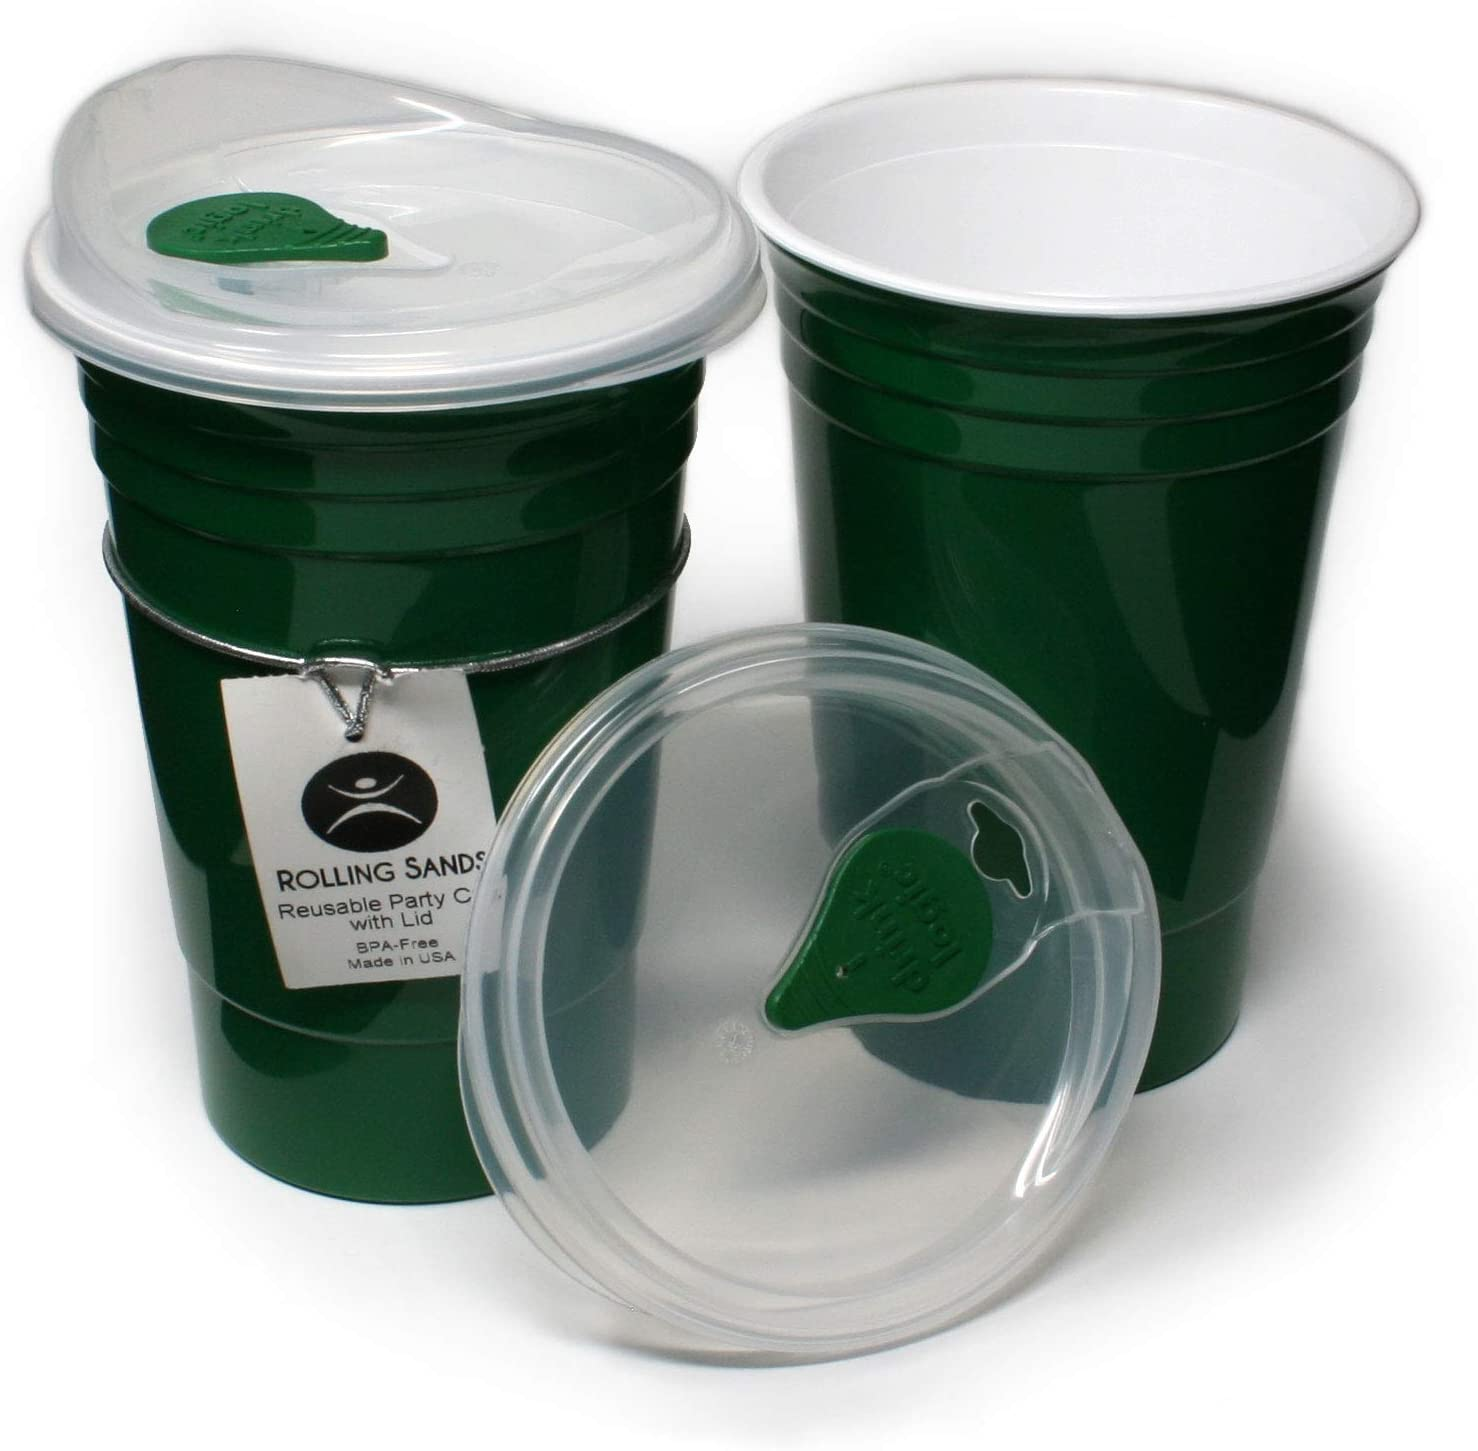 Rolling Sands Reusable BPA-Free 16 Ounce Green Party Cups with Lids - 2 Pack, Made in USA